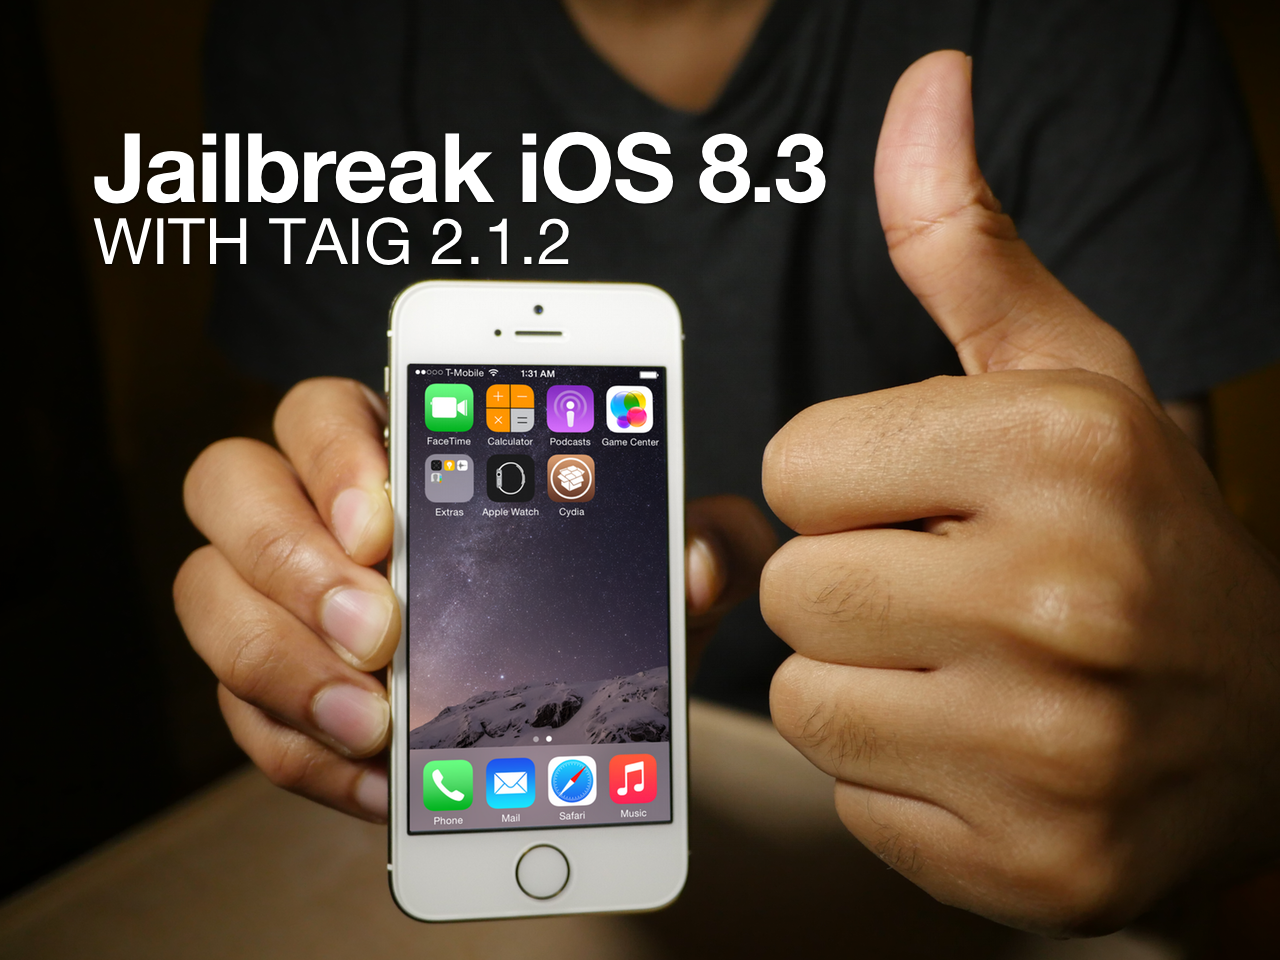 How to jailbreak iOS 8.3 with TaiG 2.1.2 + Cydia Substrate